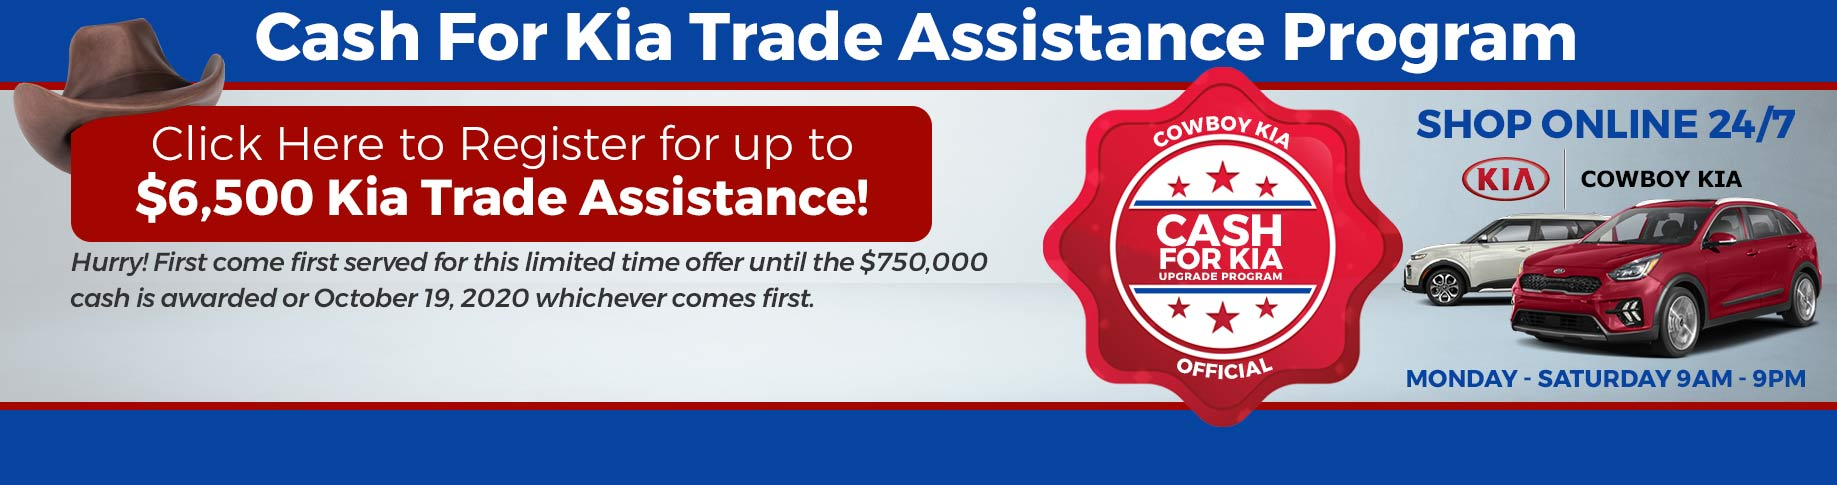 cash for kia trade assistance program